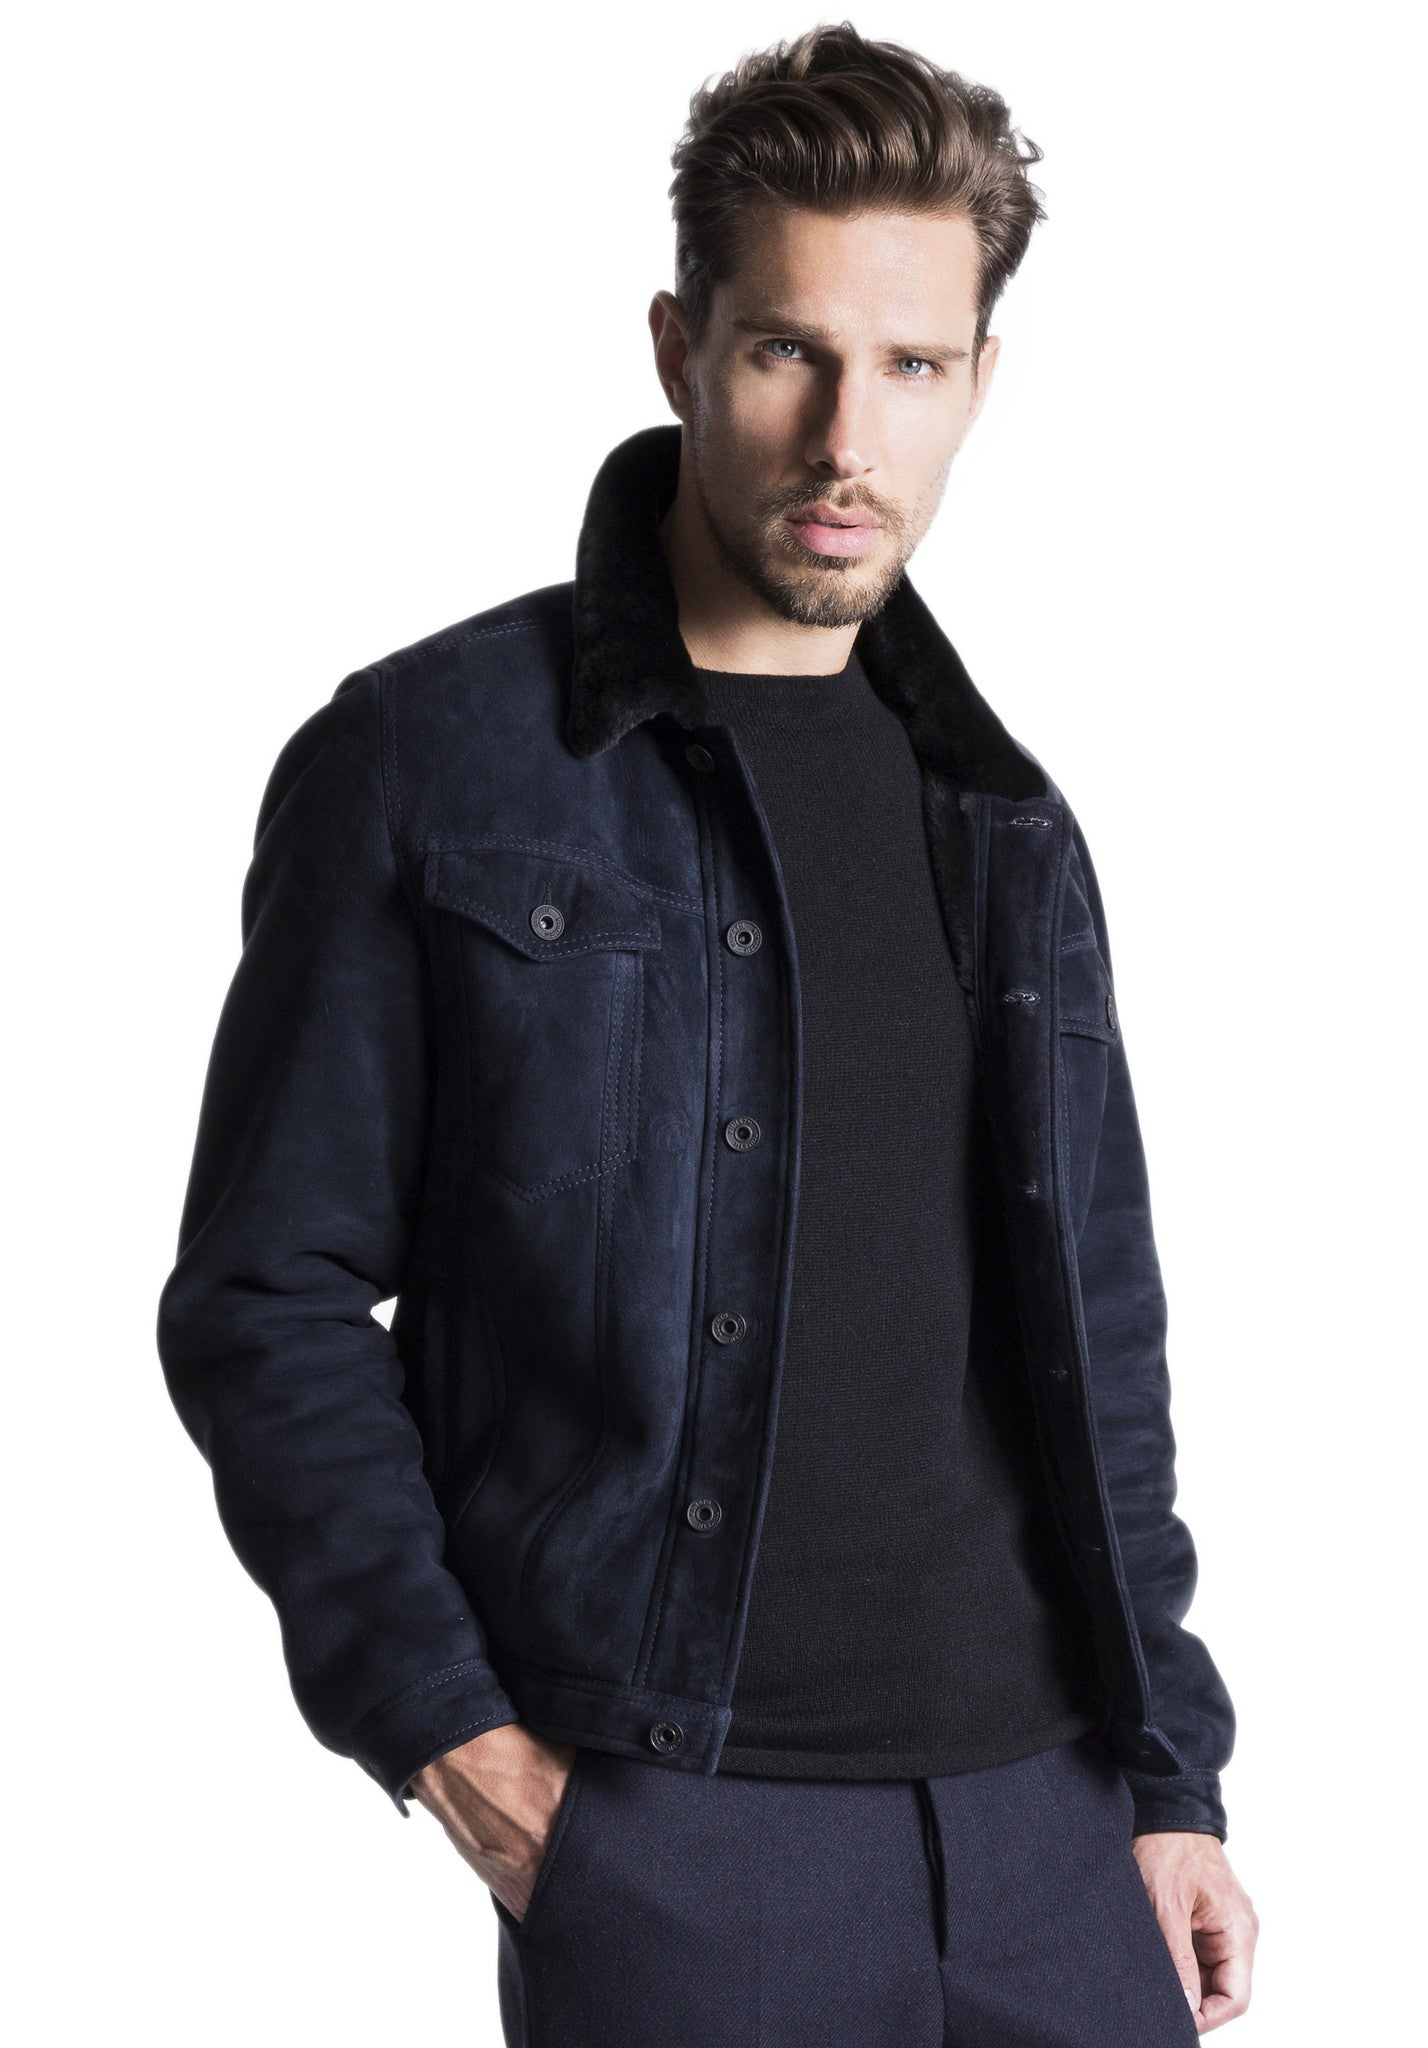 MEN's Lamb Shearling Jacket